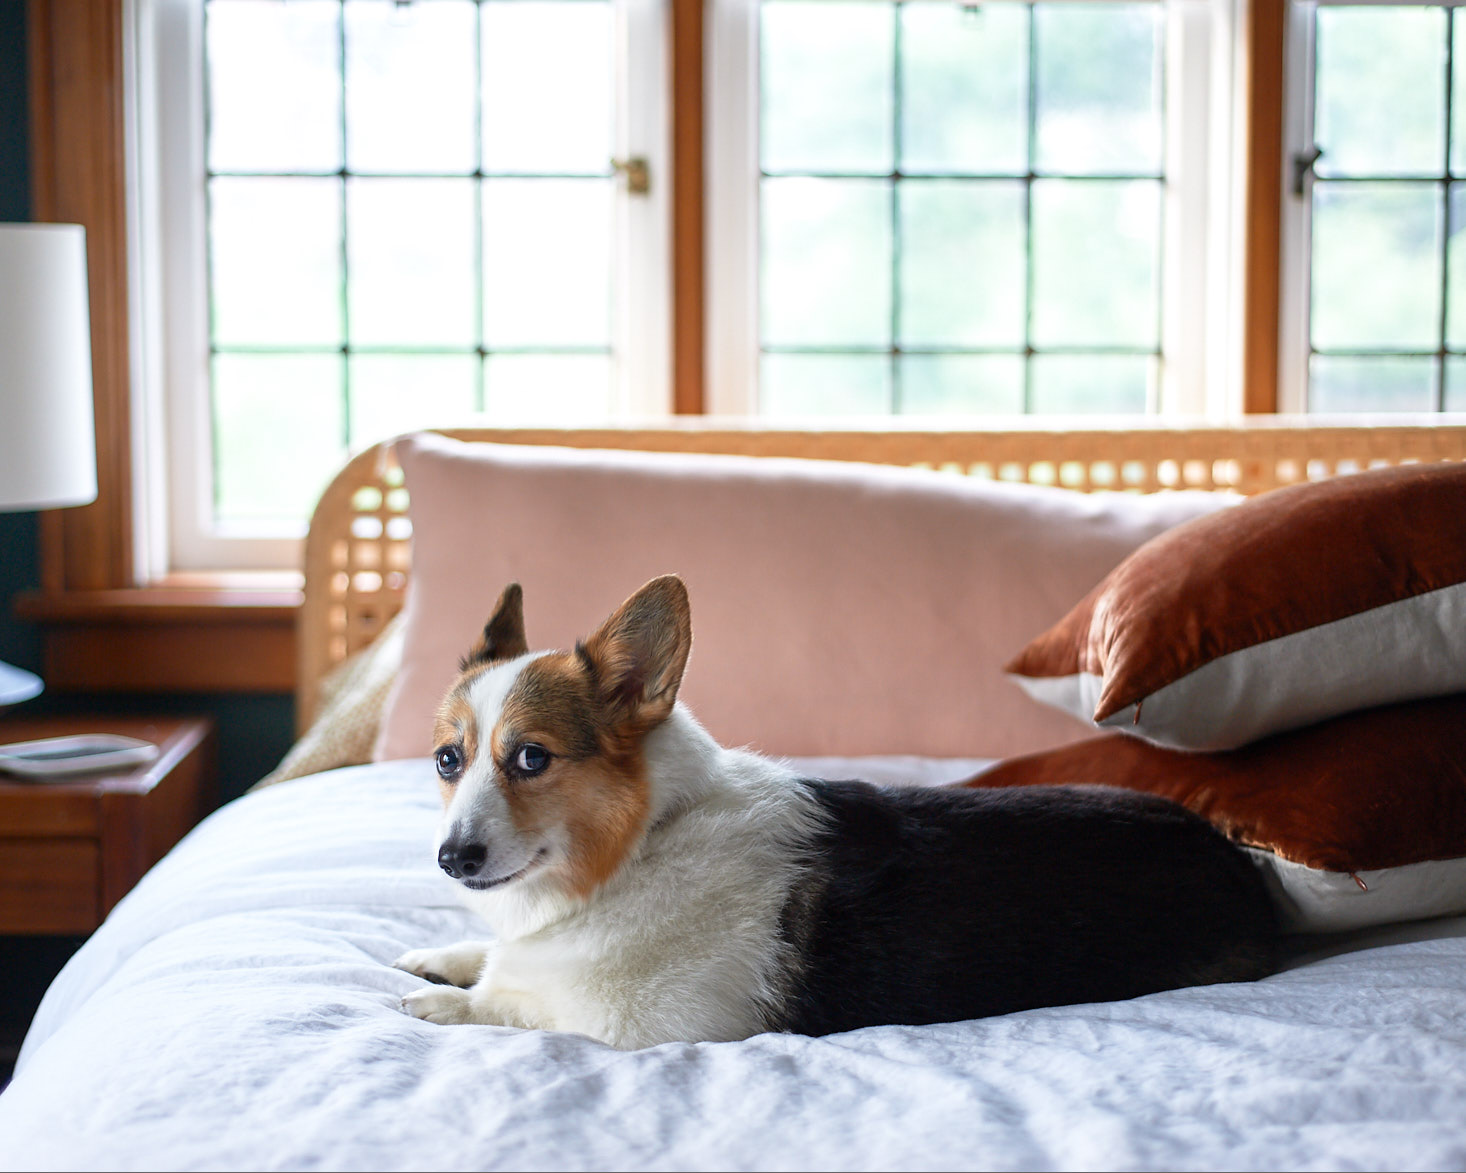 Penelope the corgi